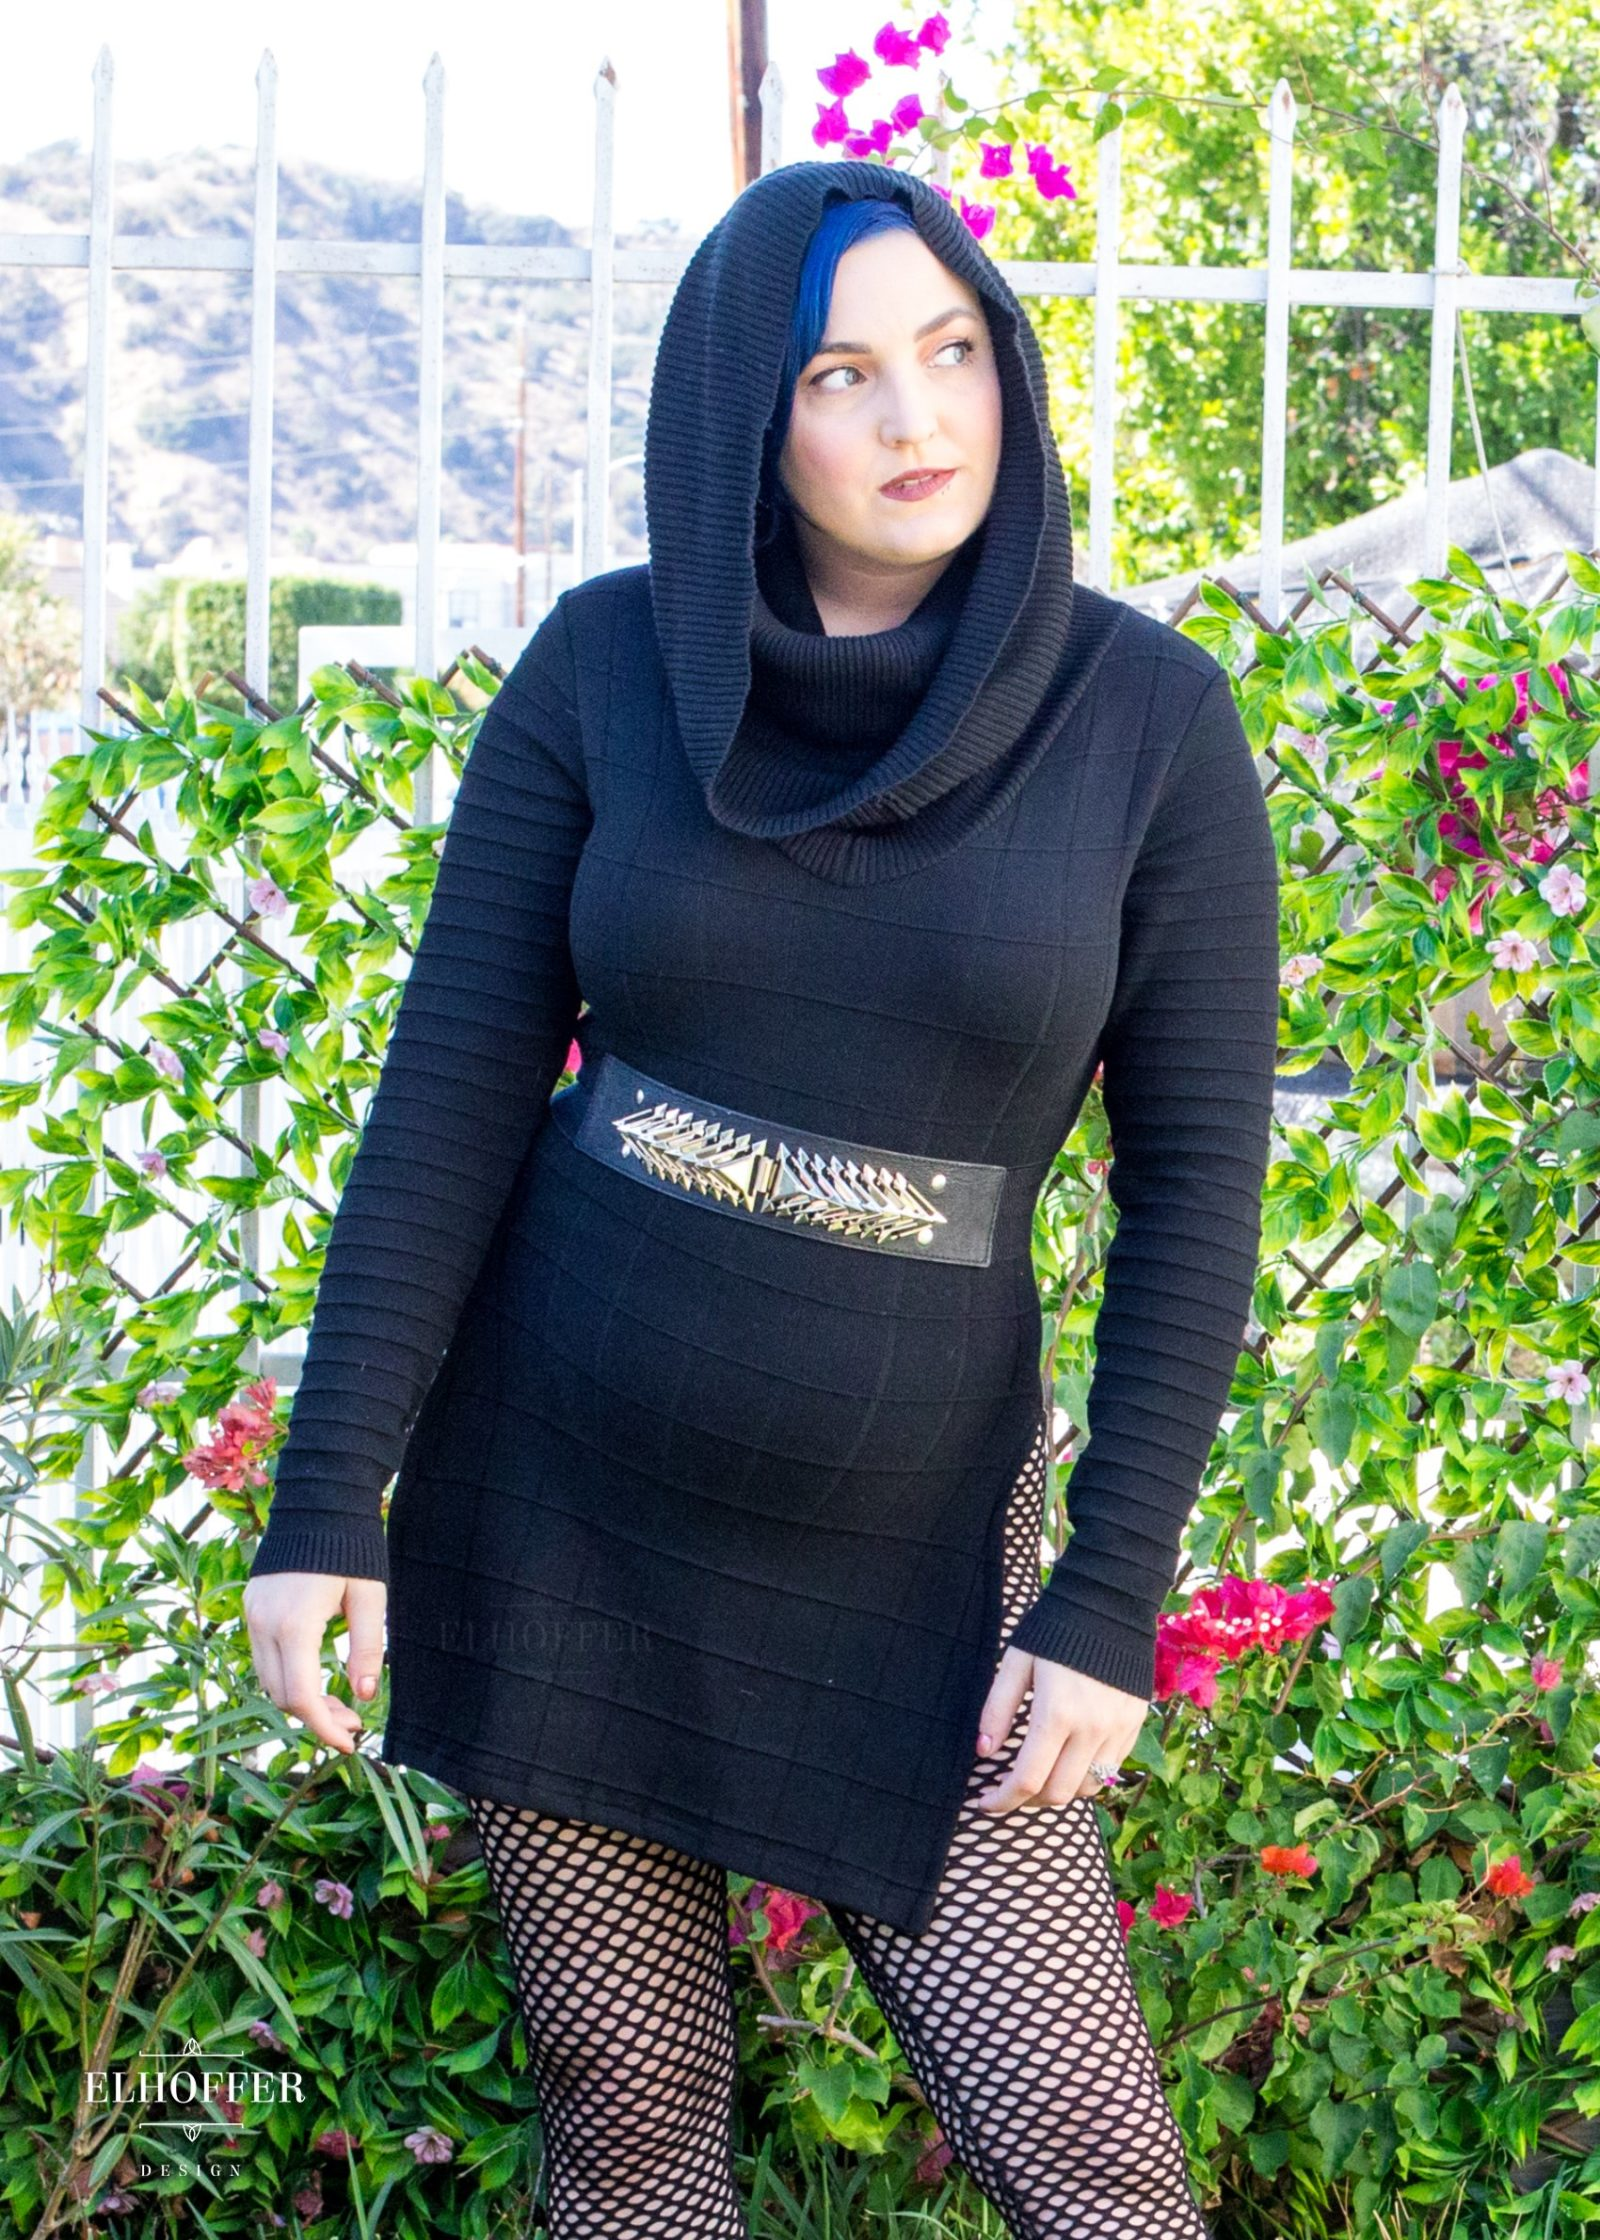 Star Wars Kylo Ren Inspired Galactic Renegade Tunic and Cape by Elhoffer Design